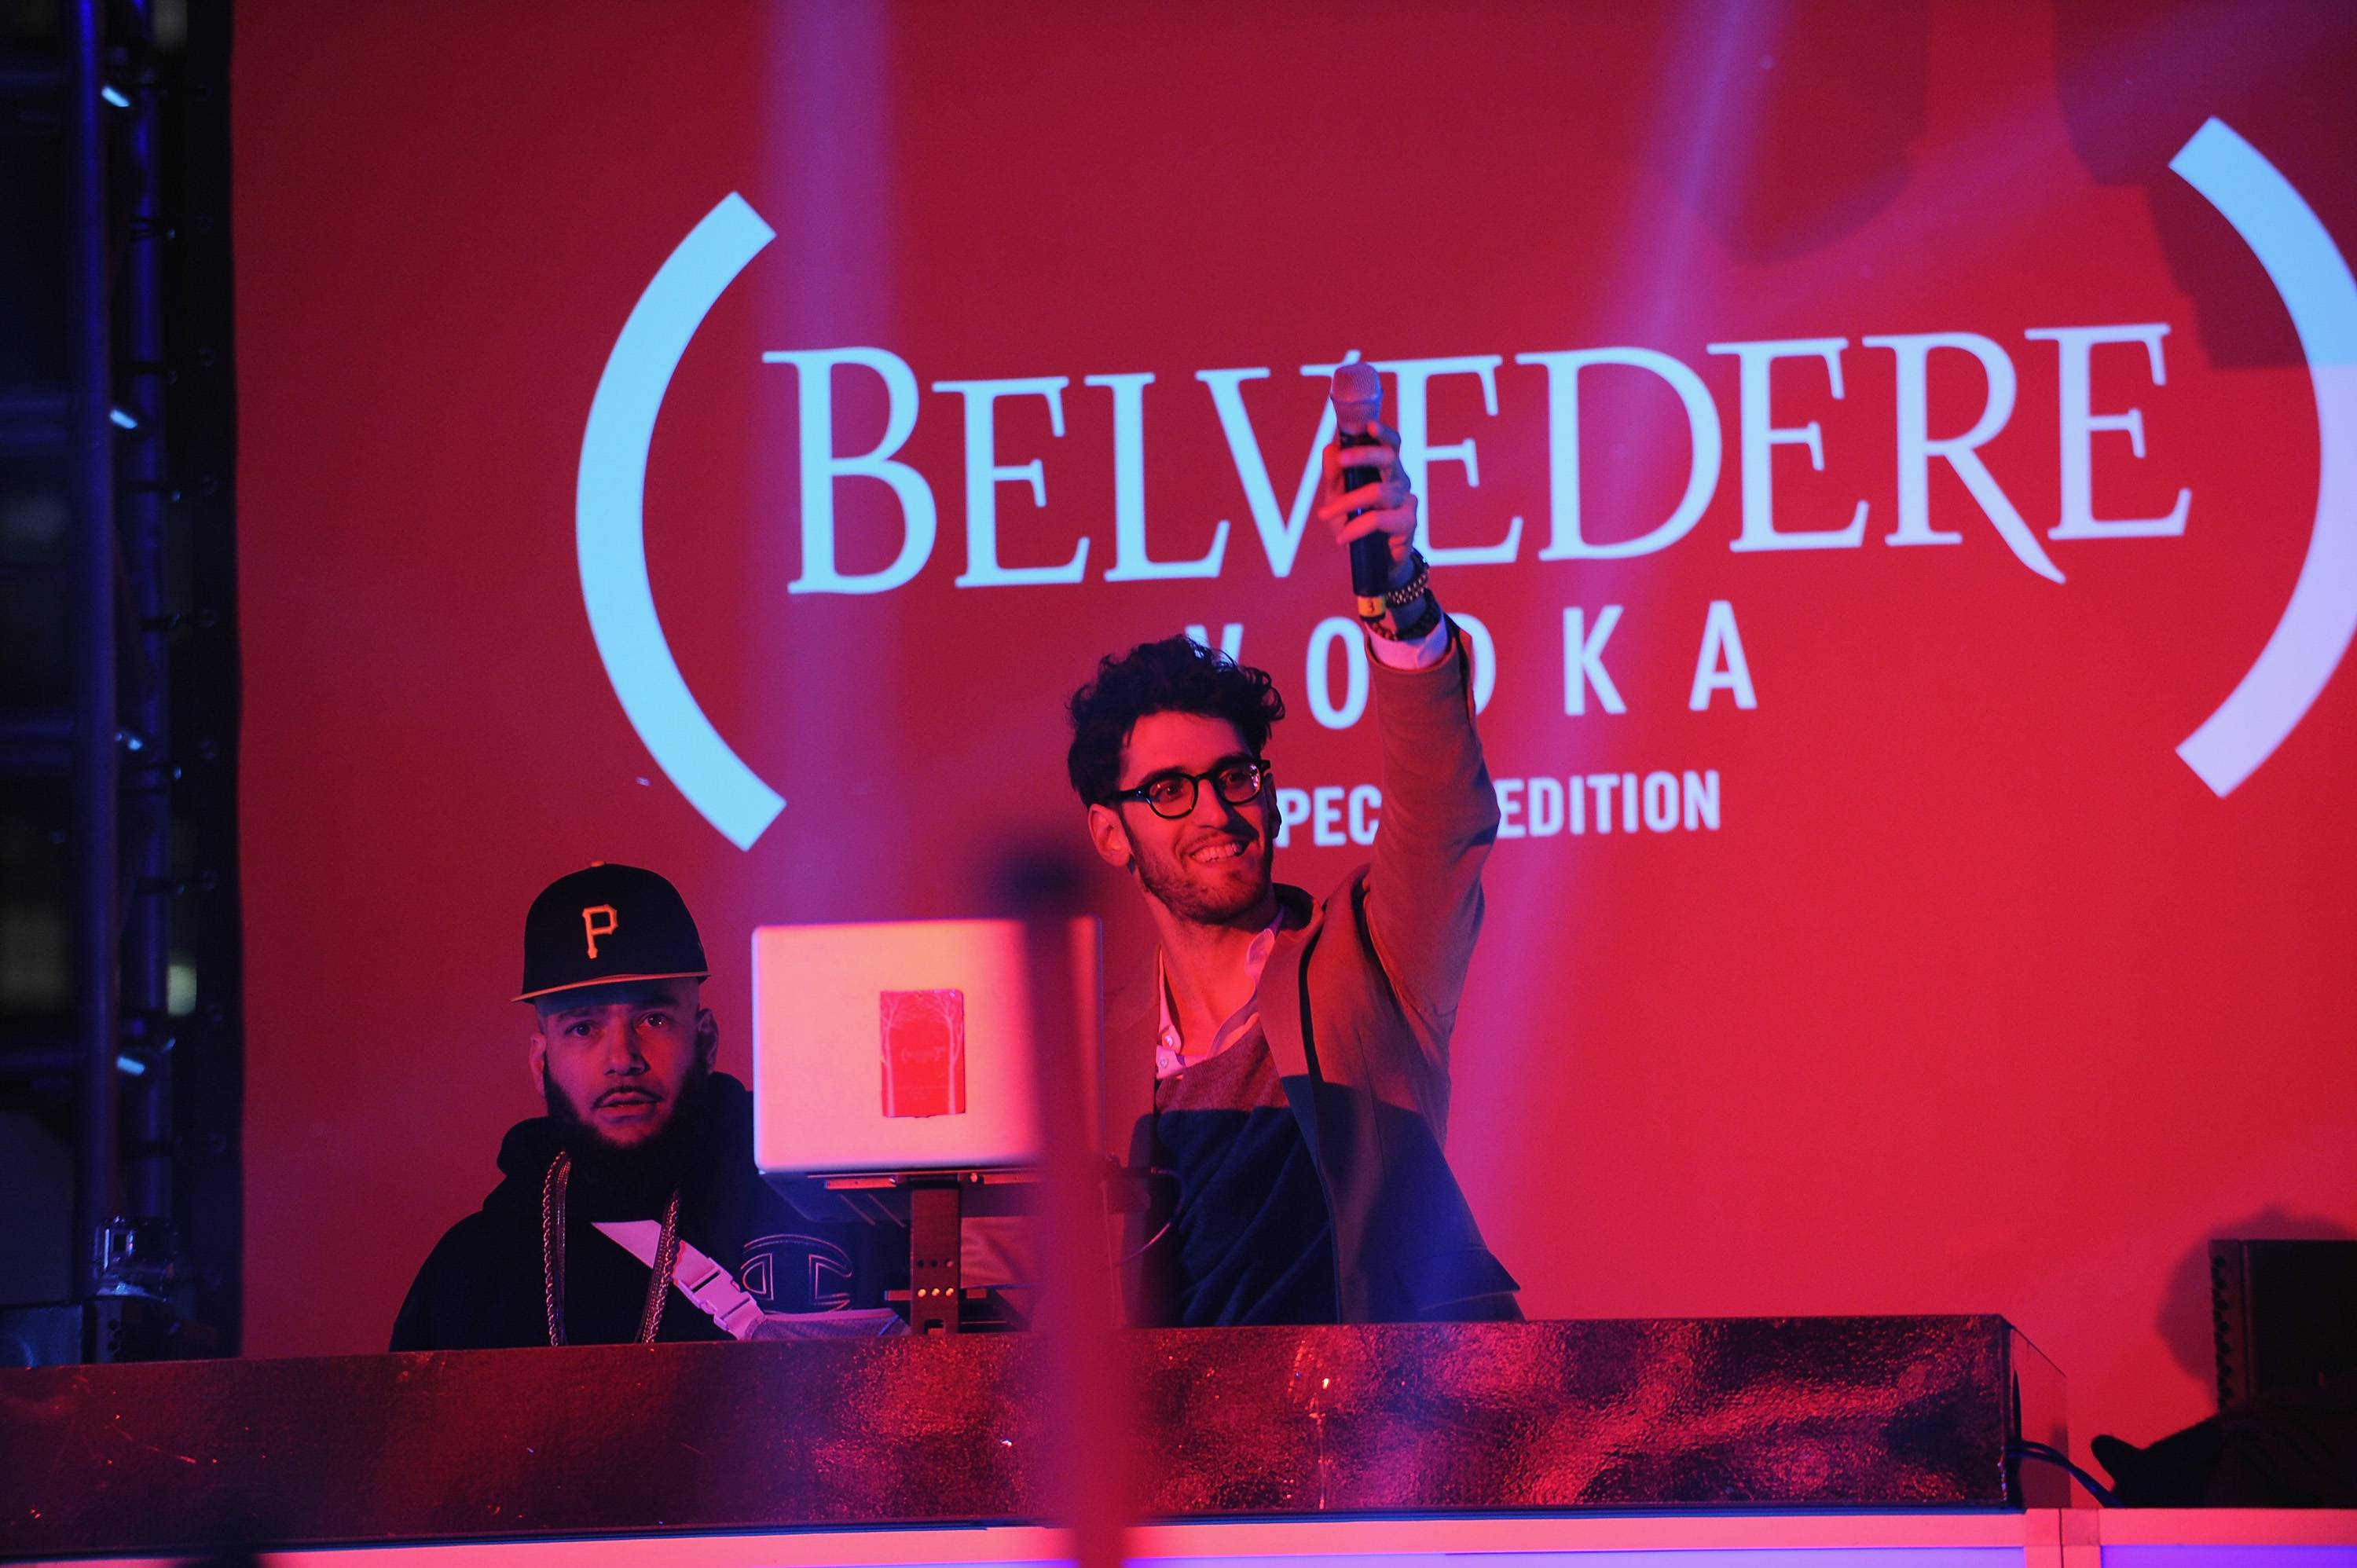 Belvedere Vodka Turns The Meatpacking District (RED) for World AIDS Day